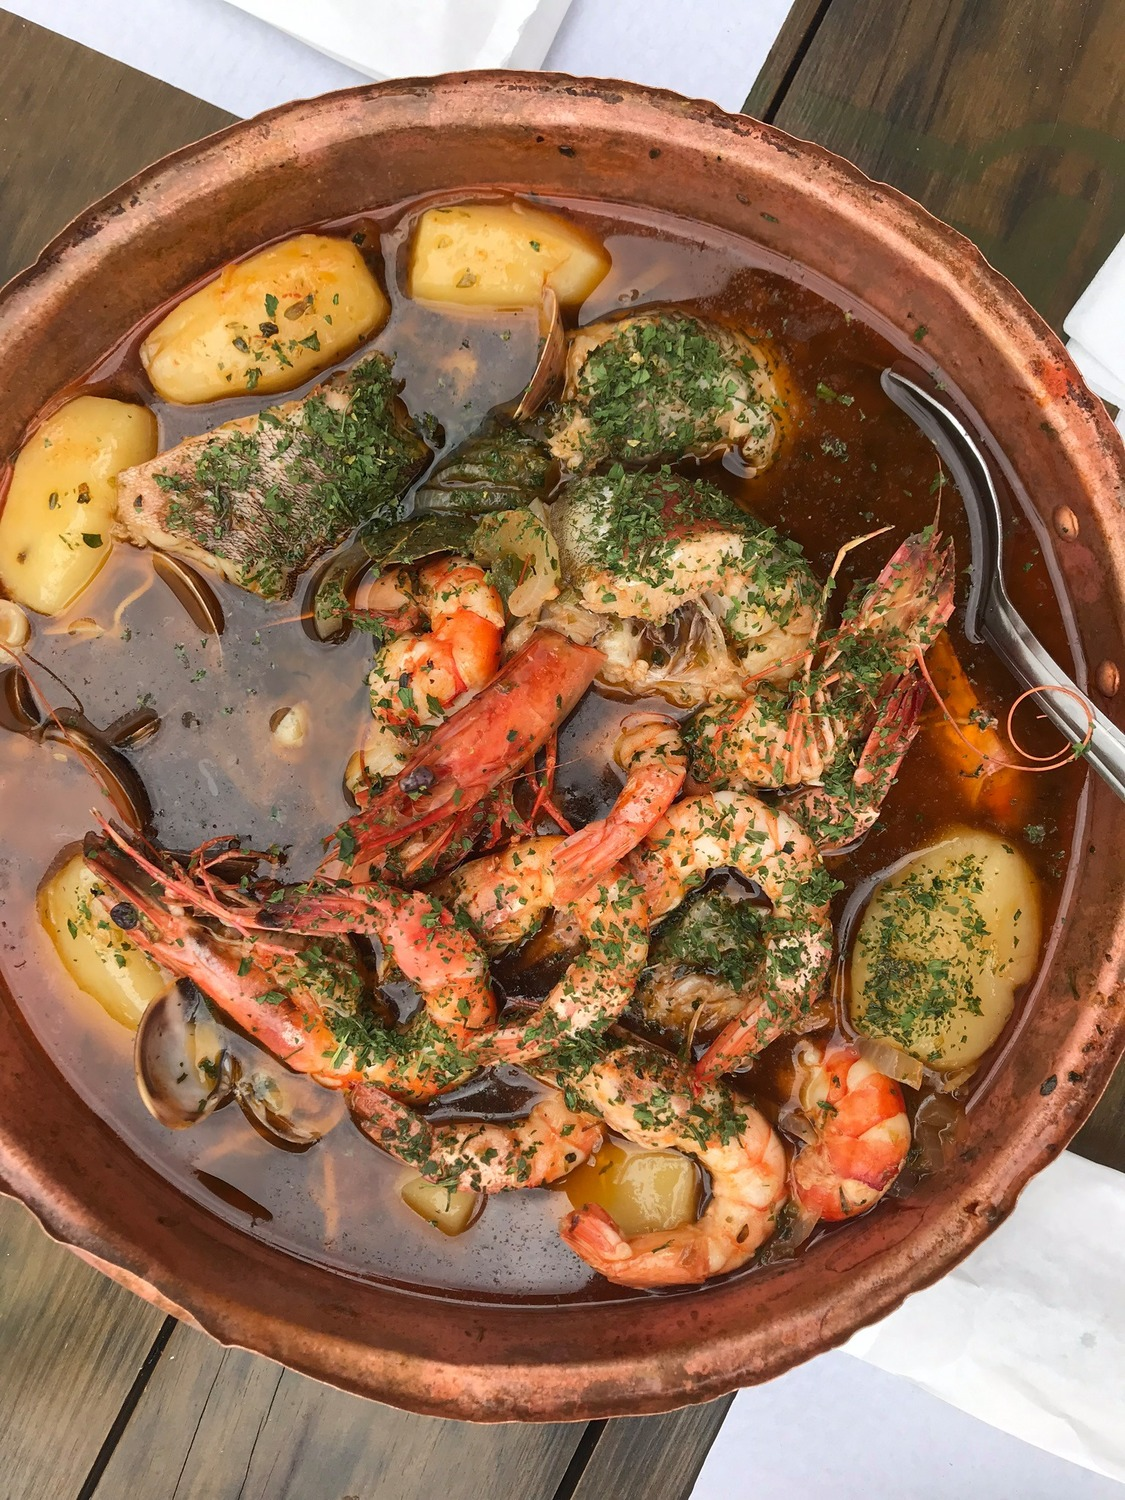 Thing to eat in Portugal. Arroz de Marisco stew of vegetables and sea food